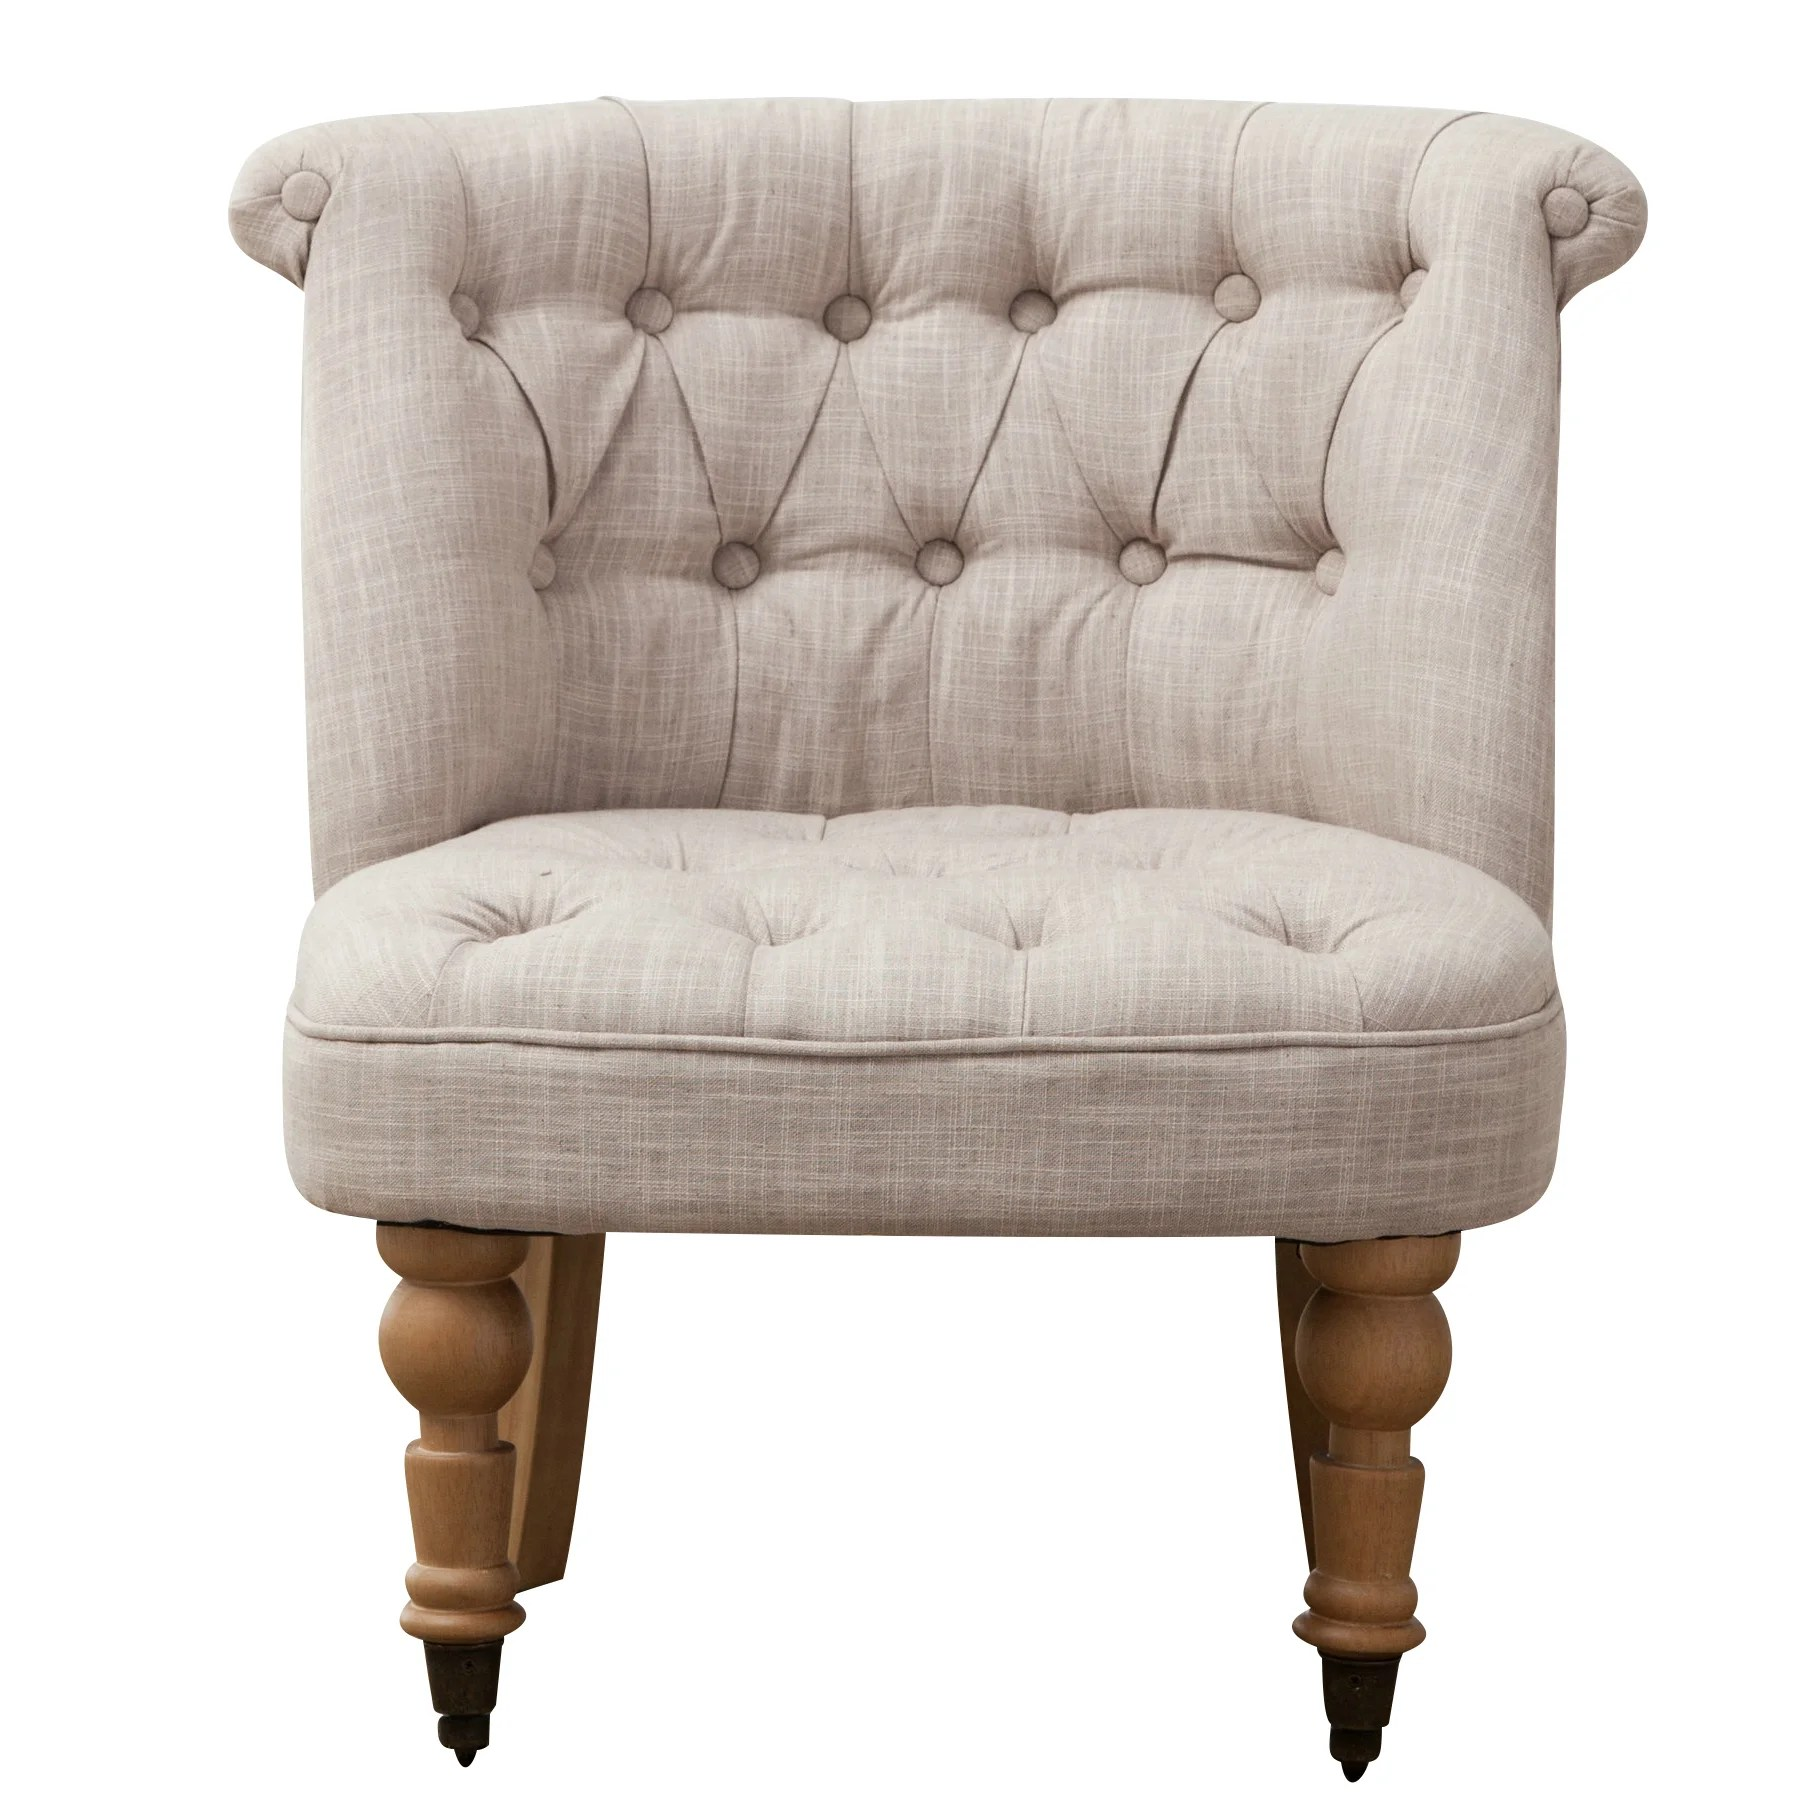 Tufted Slipper Chair Lark Manor Aurore Linen Tufted Wheeled Slipper Chair